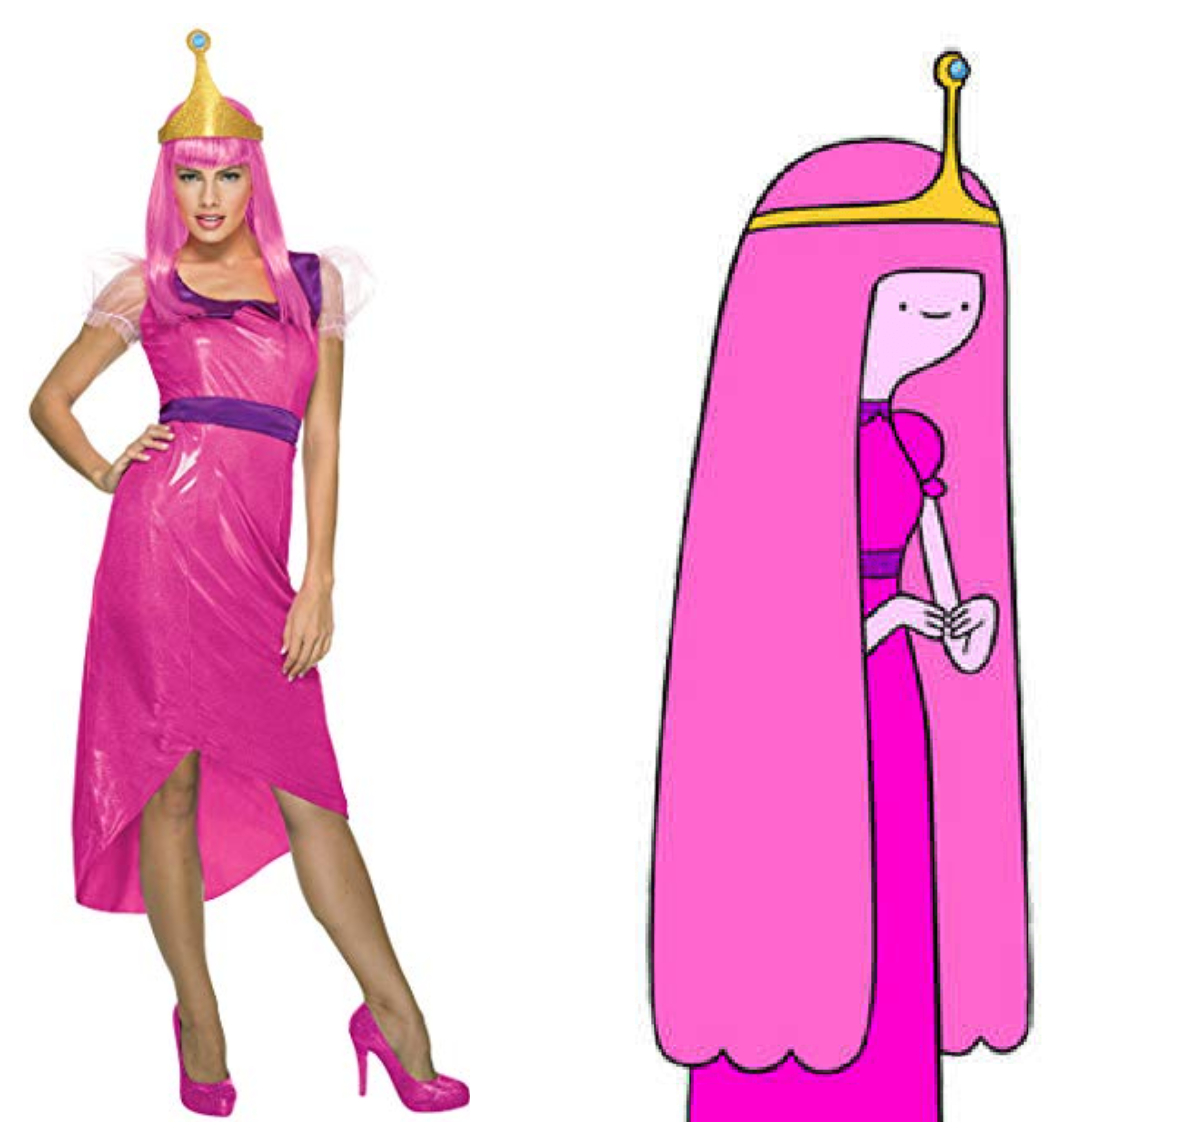 geek costume ideas Princess Bubblegum